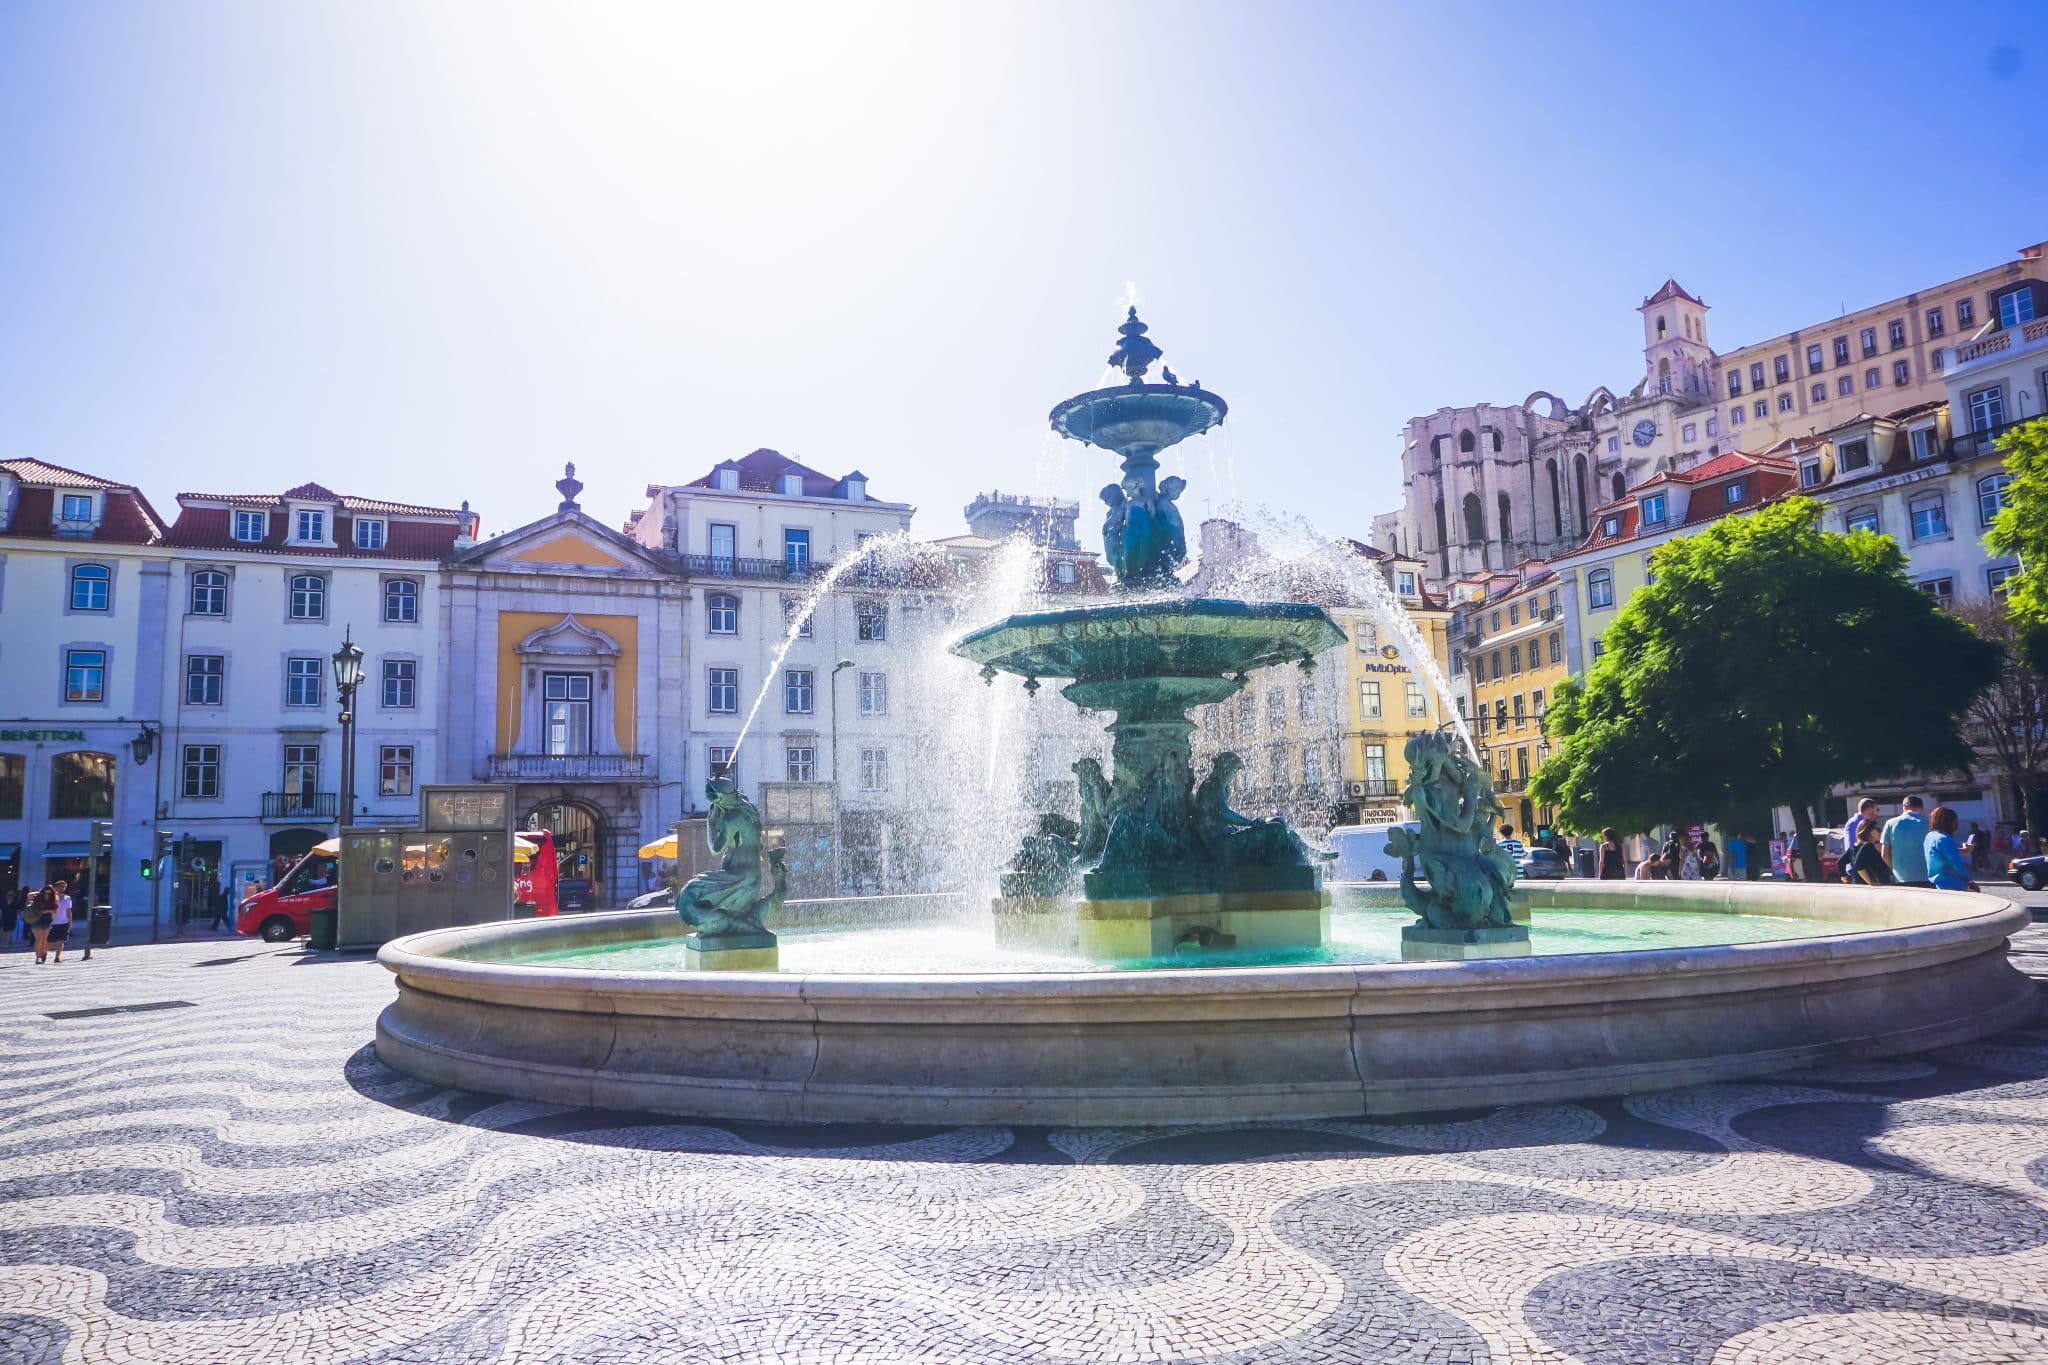 Rossio's square in Lisbon, Portugal, featuring tiles, a fountain and colorful buildings. This square survived the earth quake.